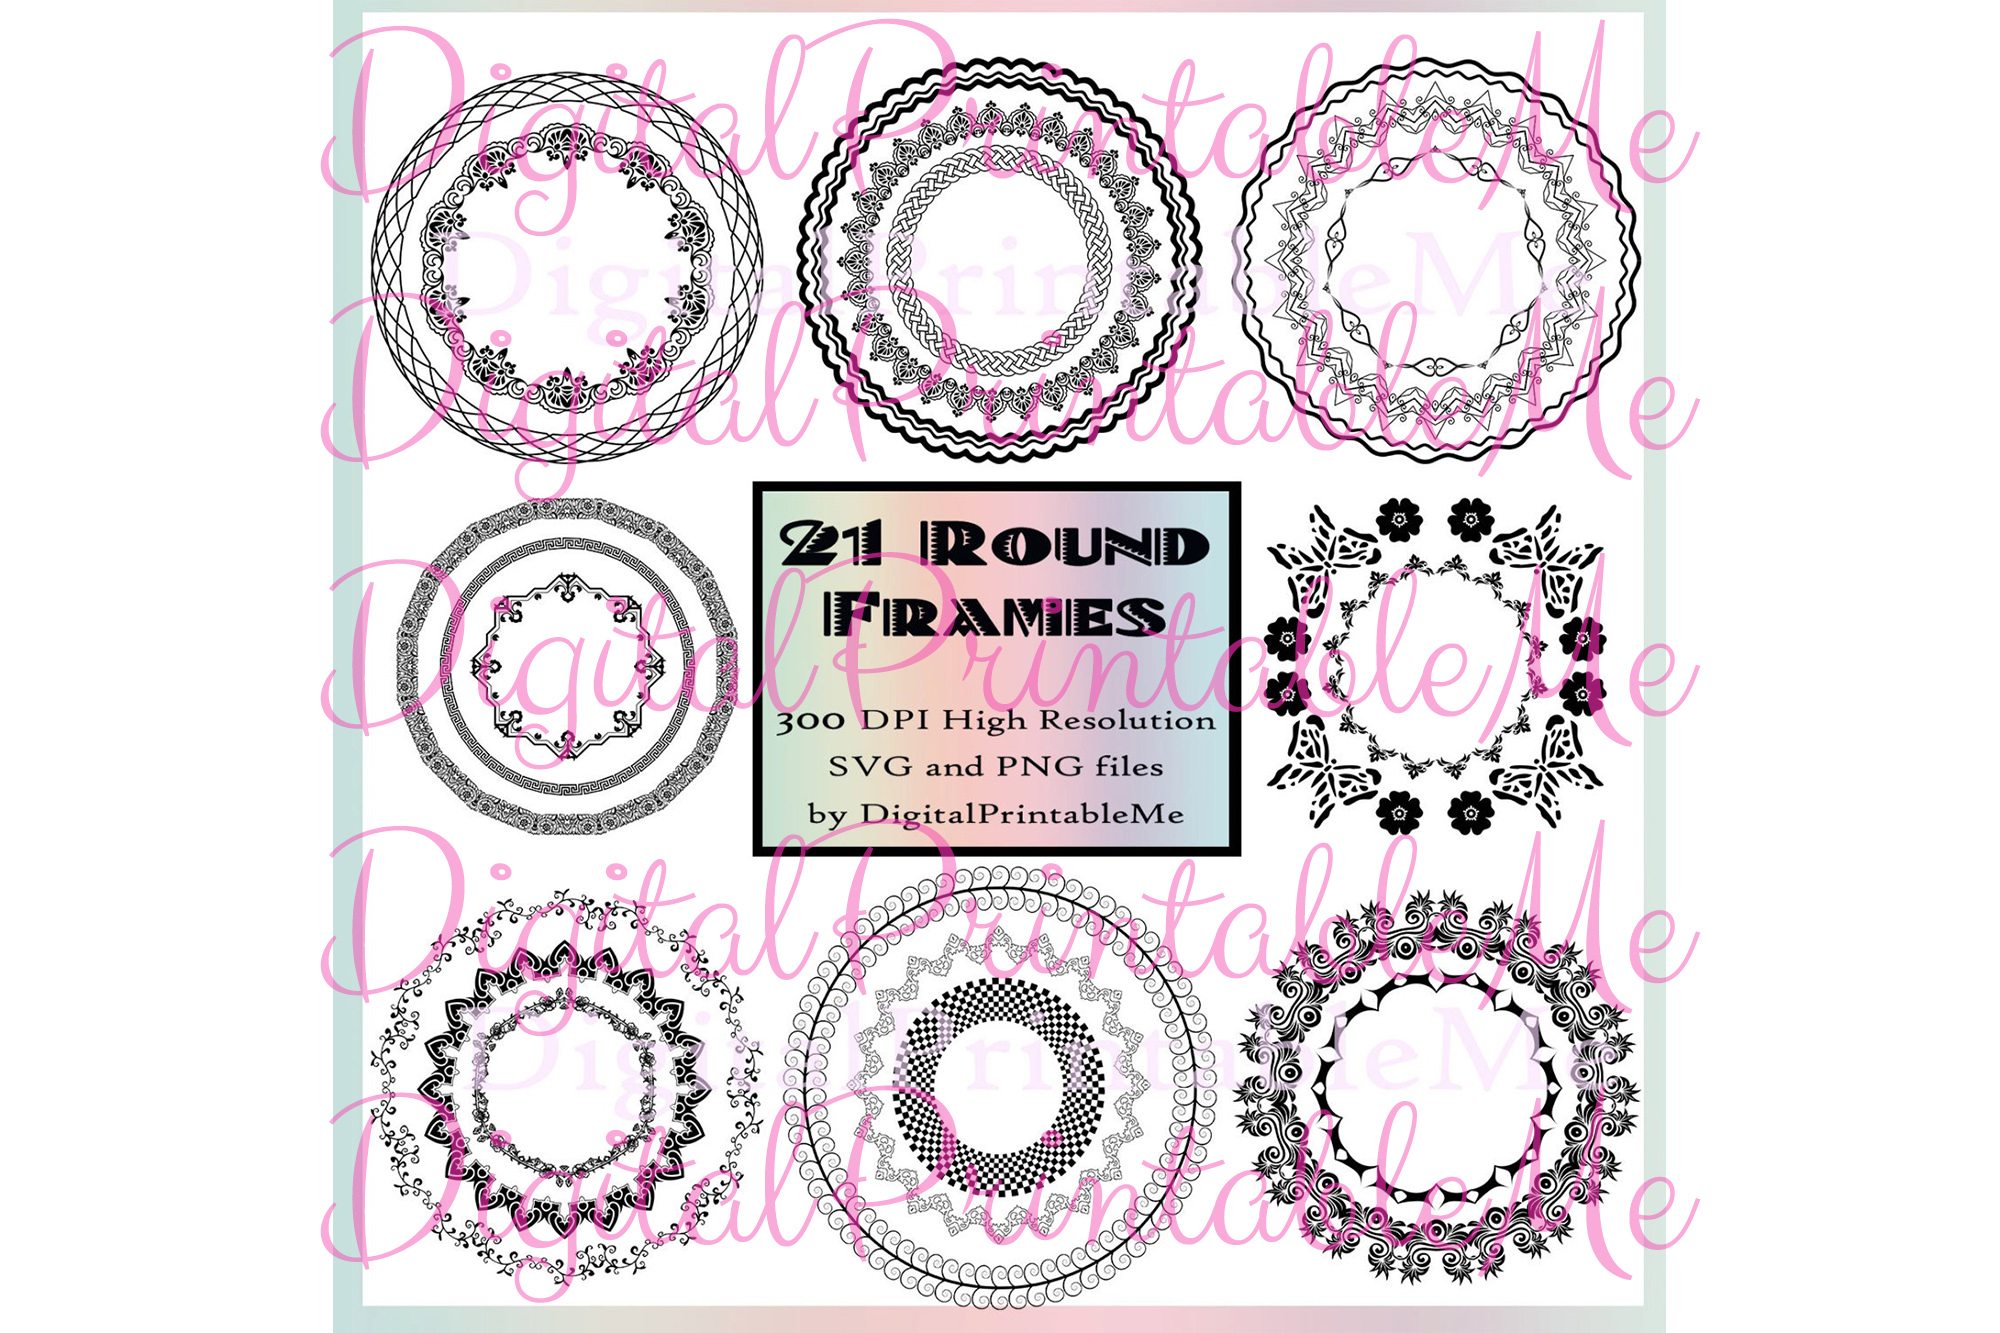 Download Free Round Frames Borders Clip Art Art Deco Graphic By Digitalprintableme Creative Fabrica for Cricut Explore, Silhouette and other cutting machines.